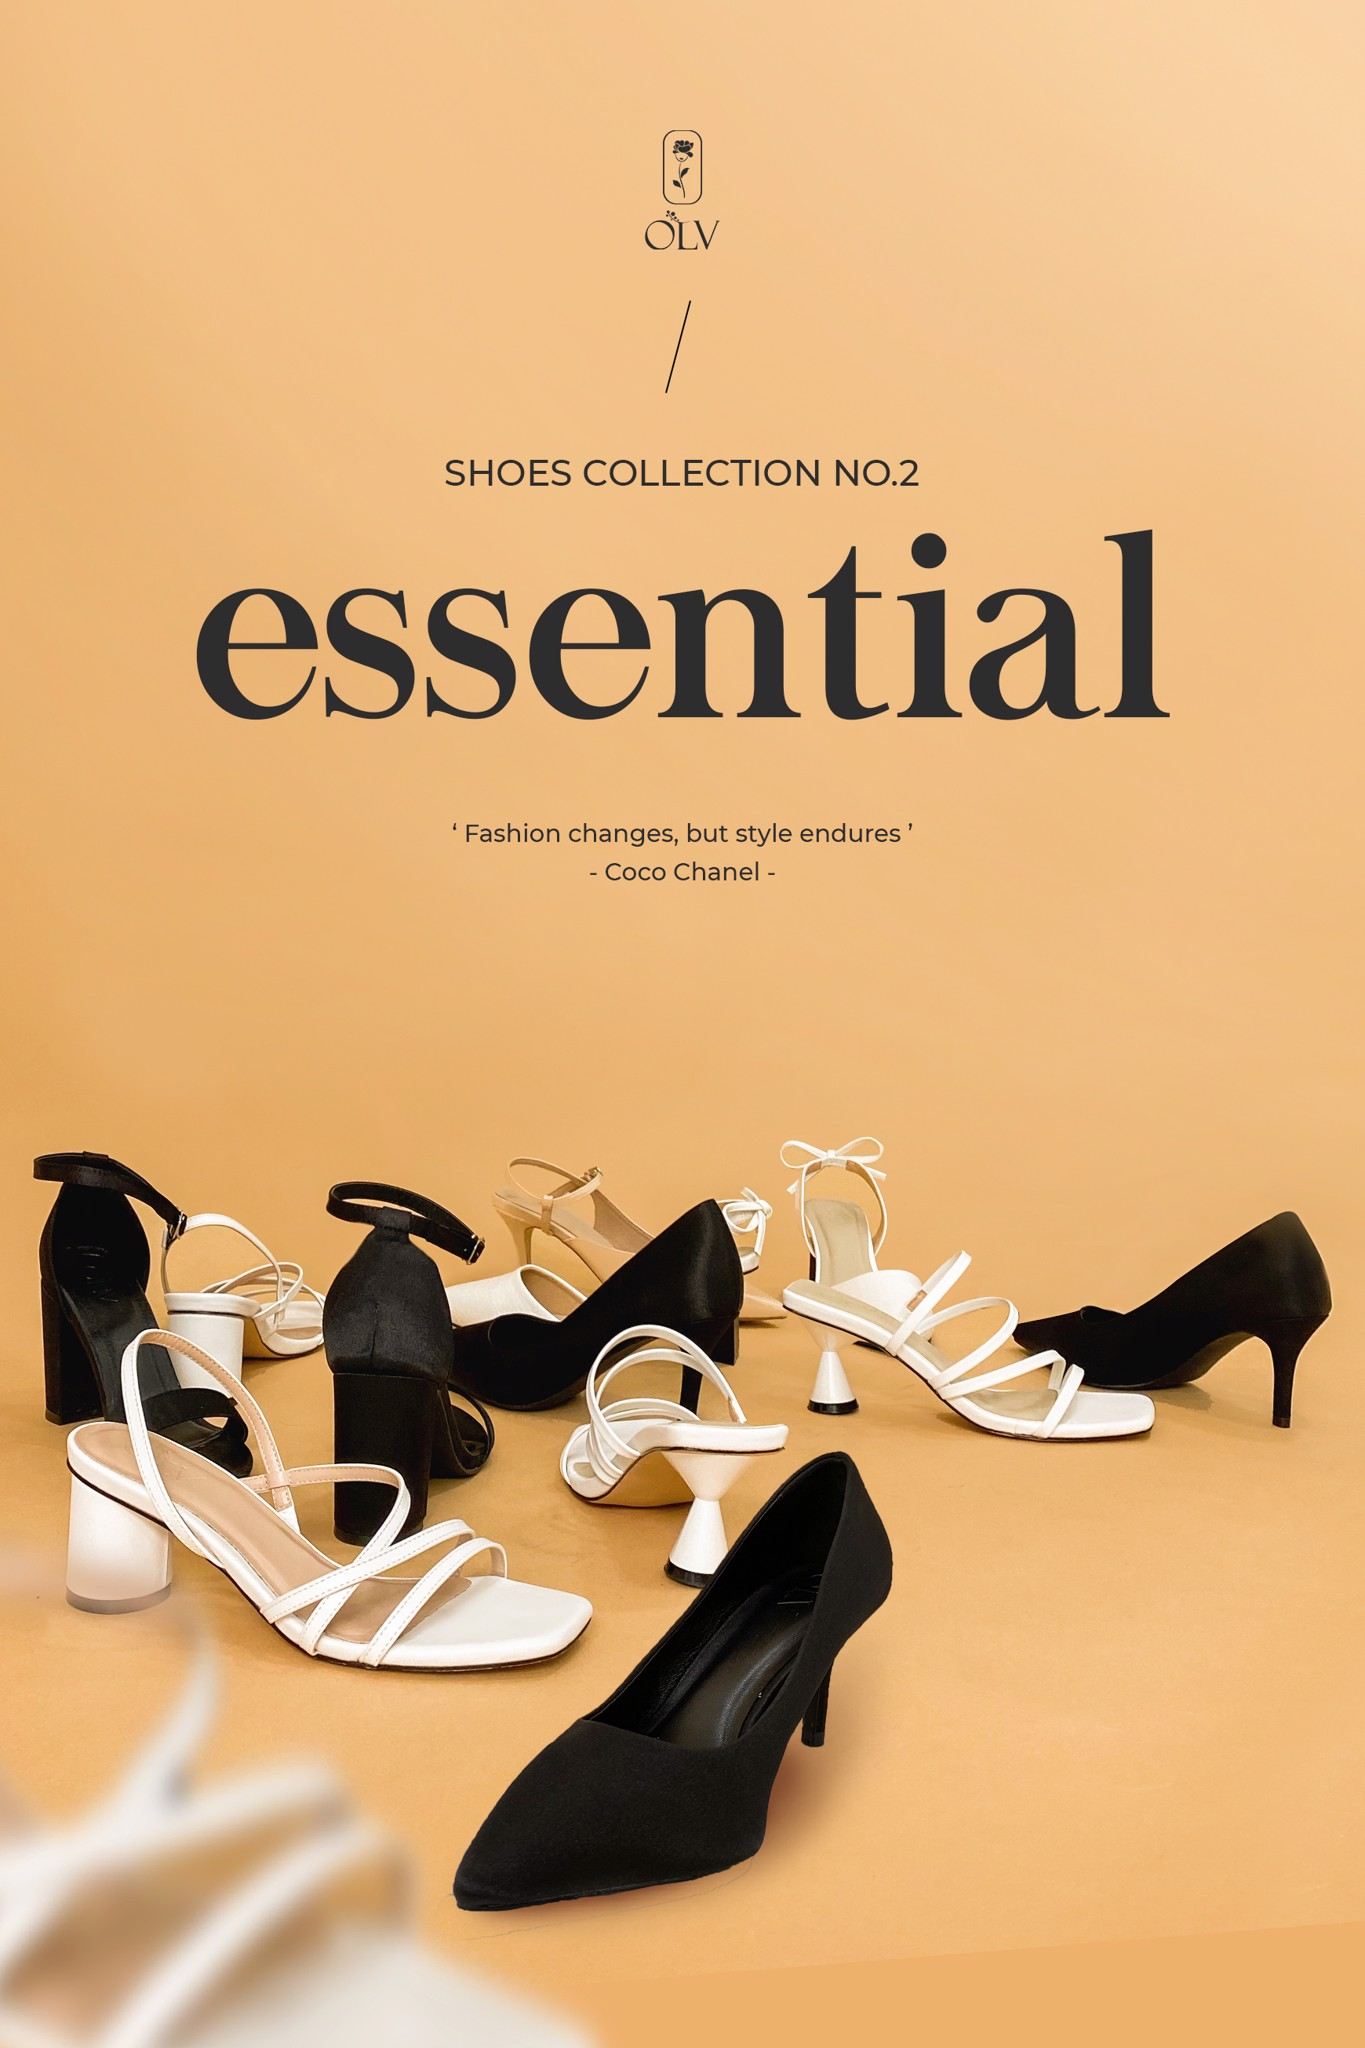 olv essential shoes collection 02